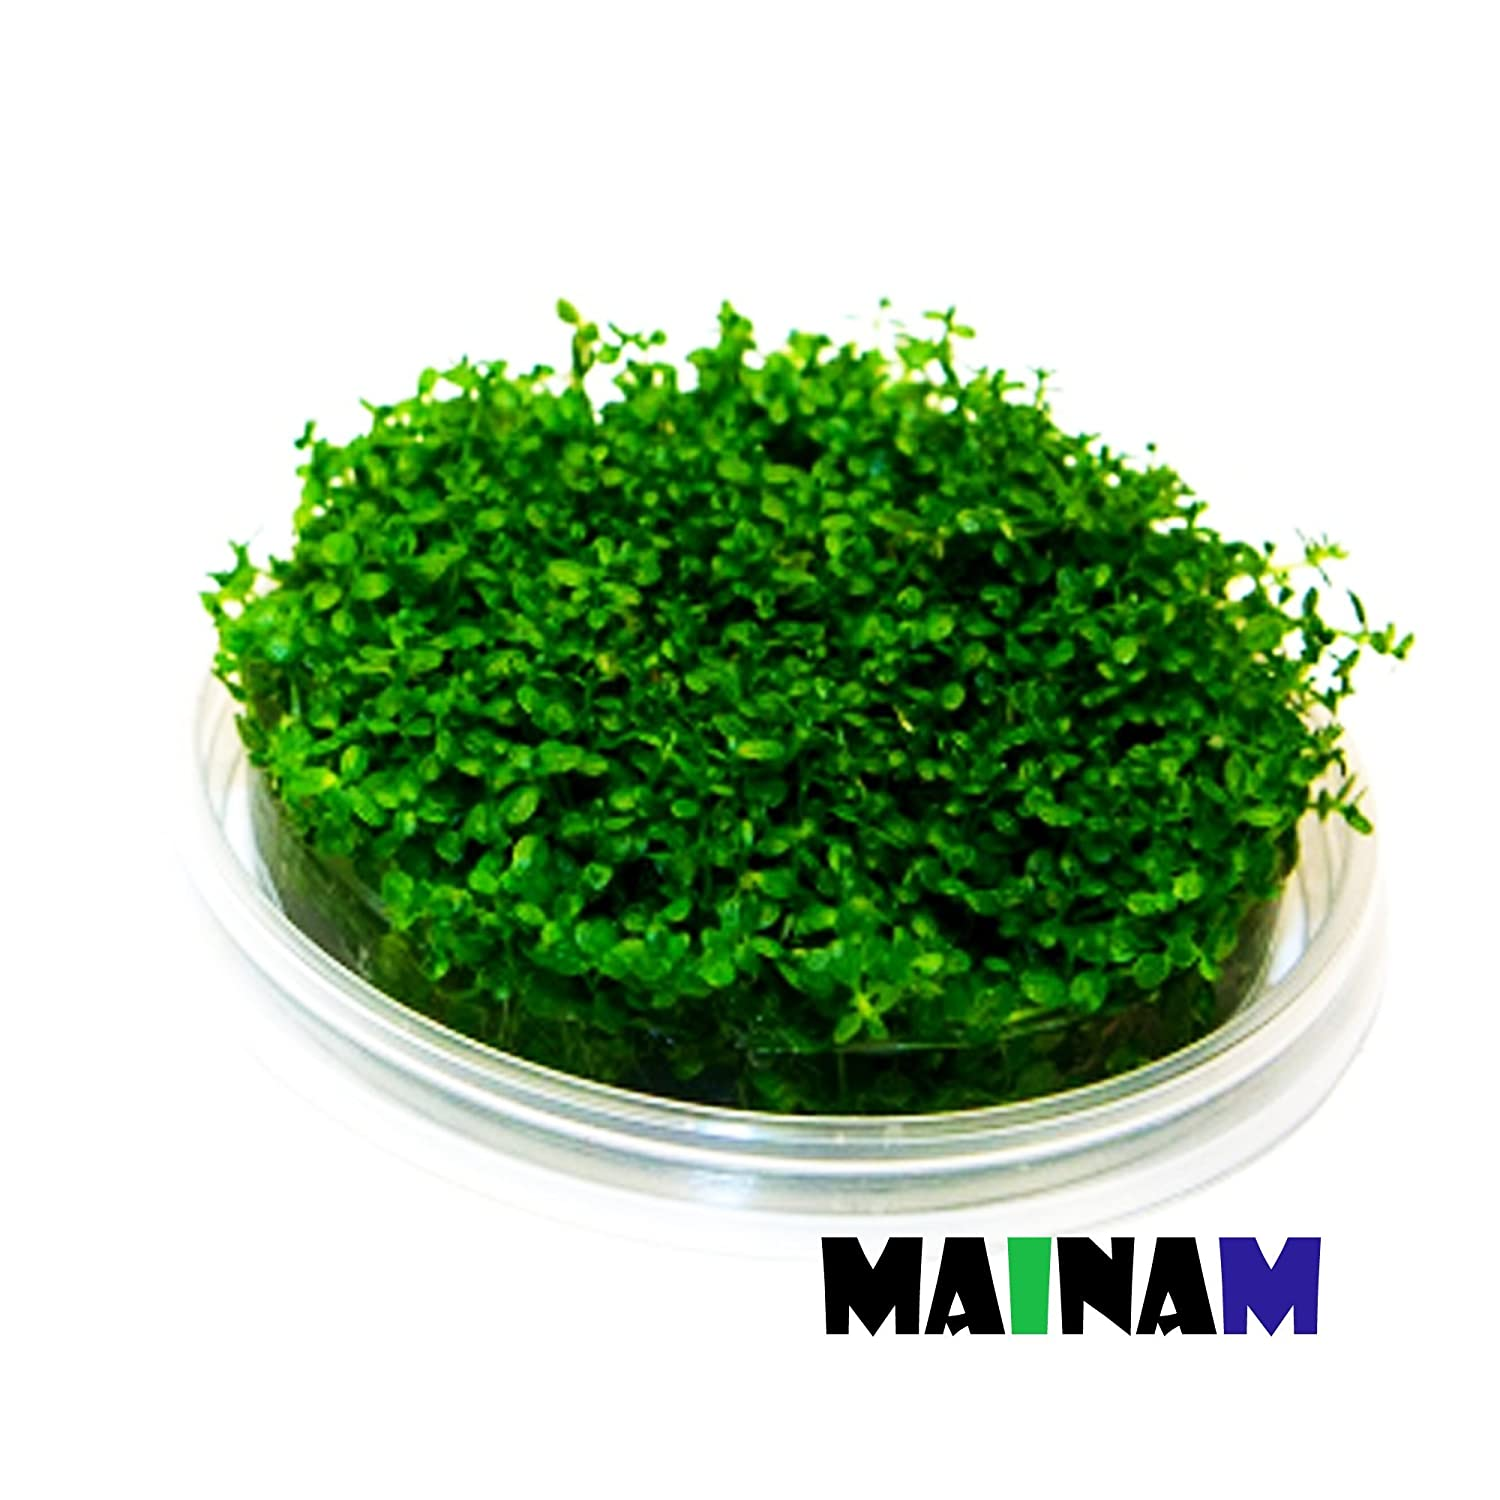 Mainam Dwarf Baby Tears Carpet Live Aquarium Plants Tissue Culture